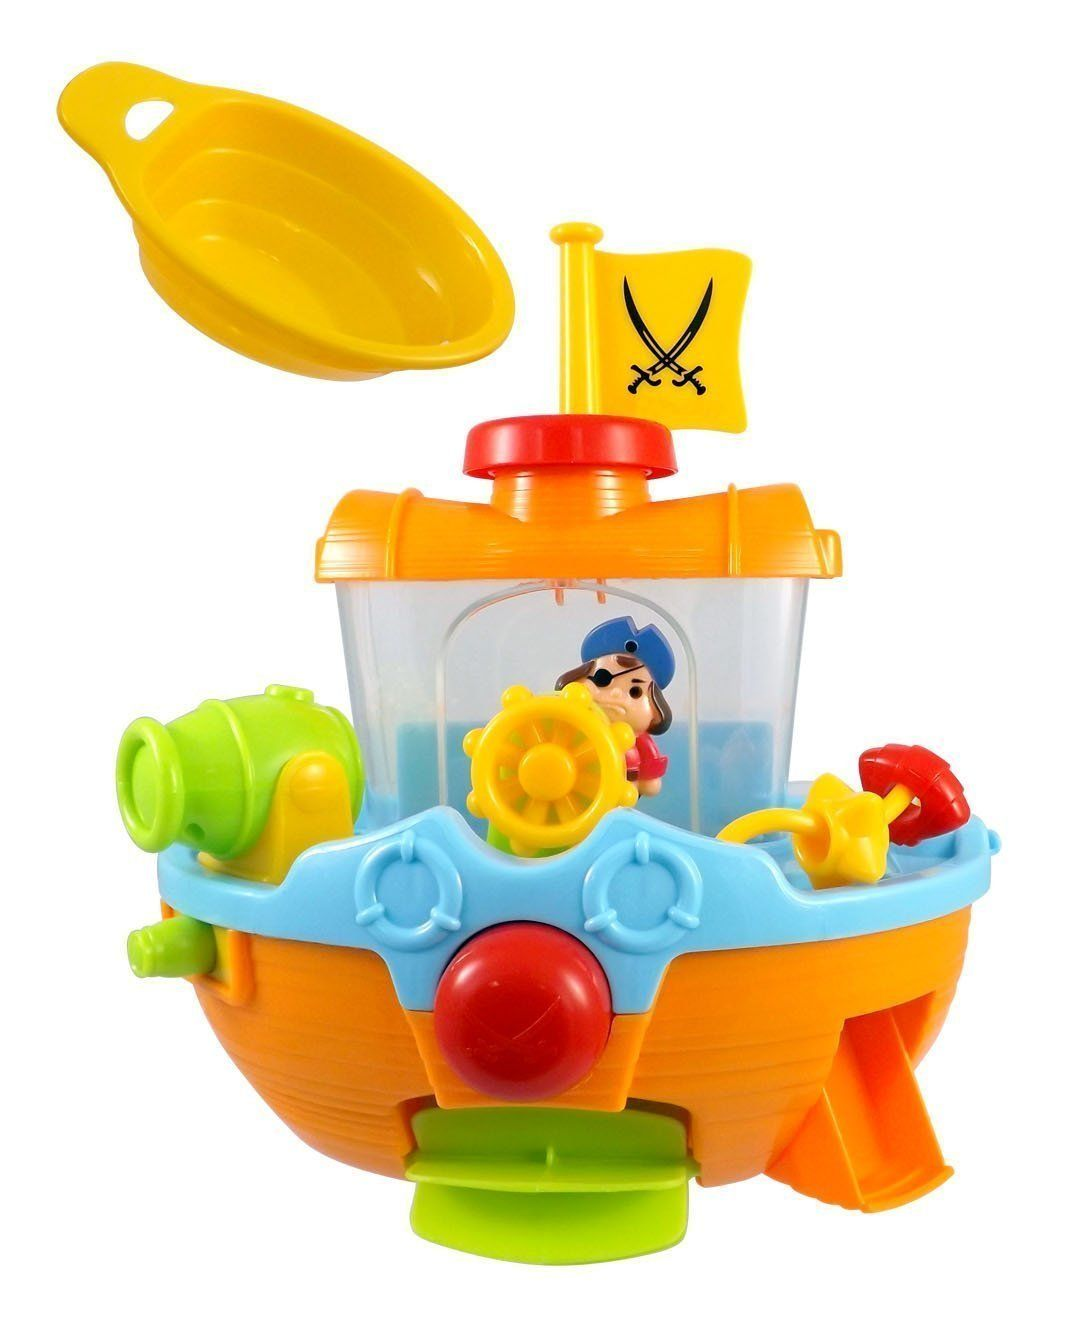 Beby Bath time Pirate Ship Toddlers Tub Toy for kids with Water ...